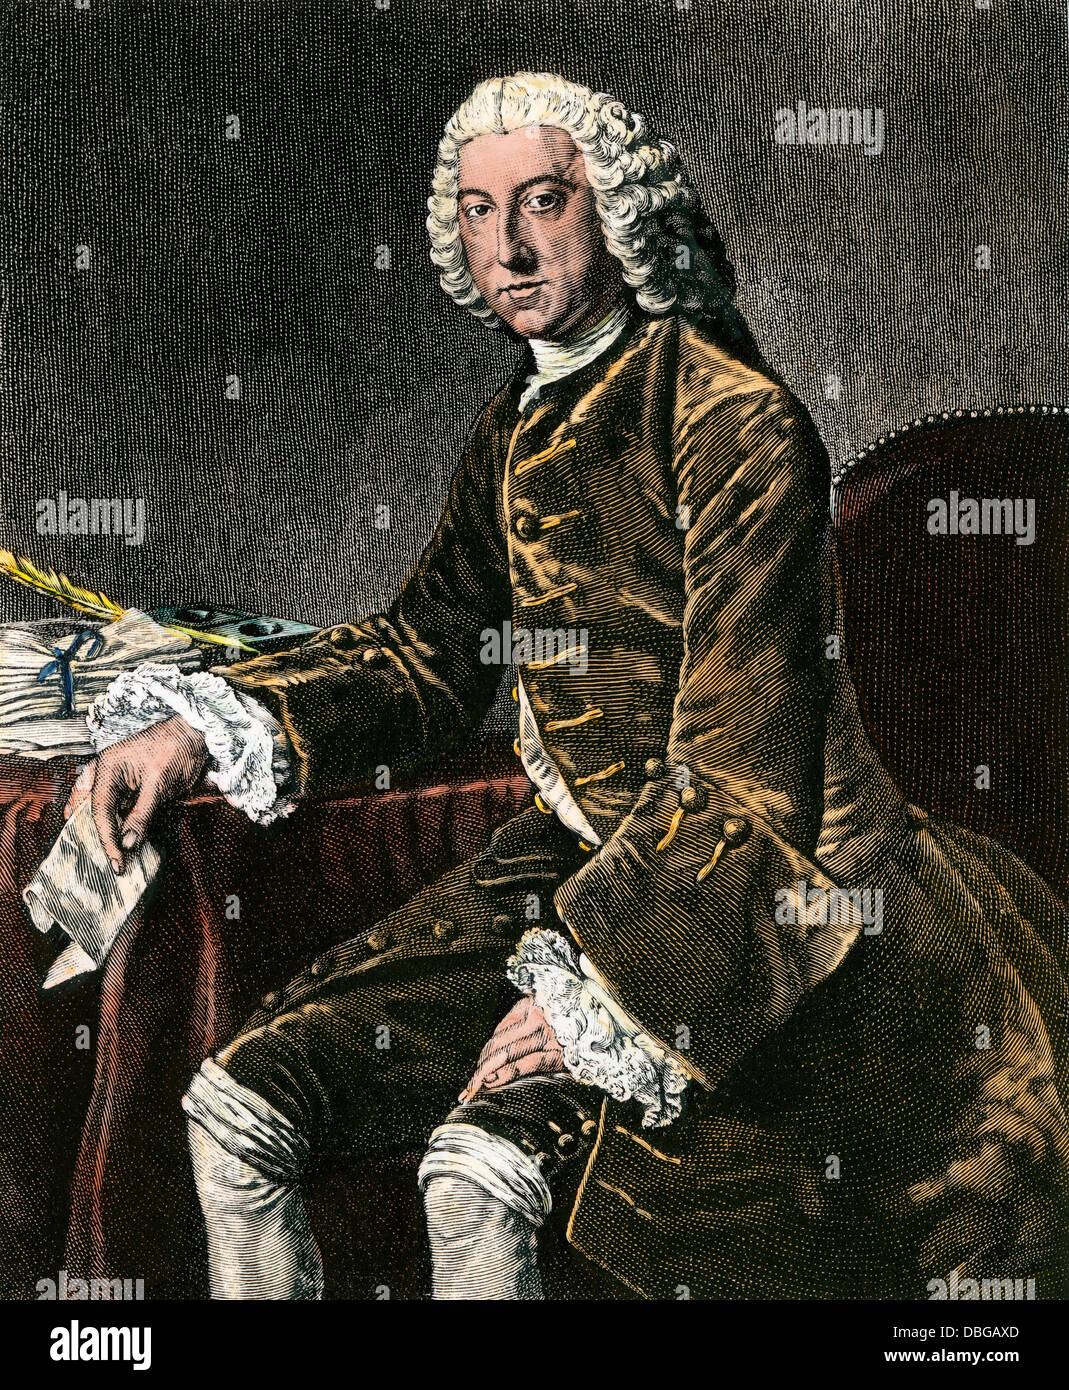 William Pitt, Earl of Chatham. Hand-colored engraving - Stock Image